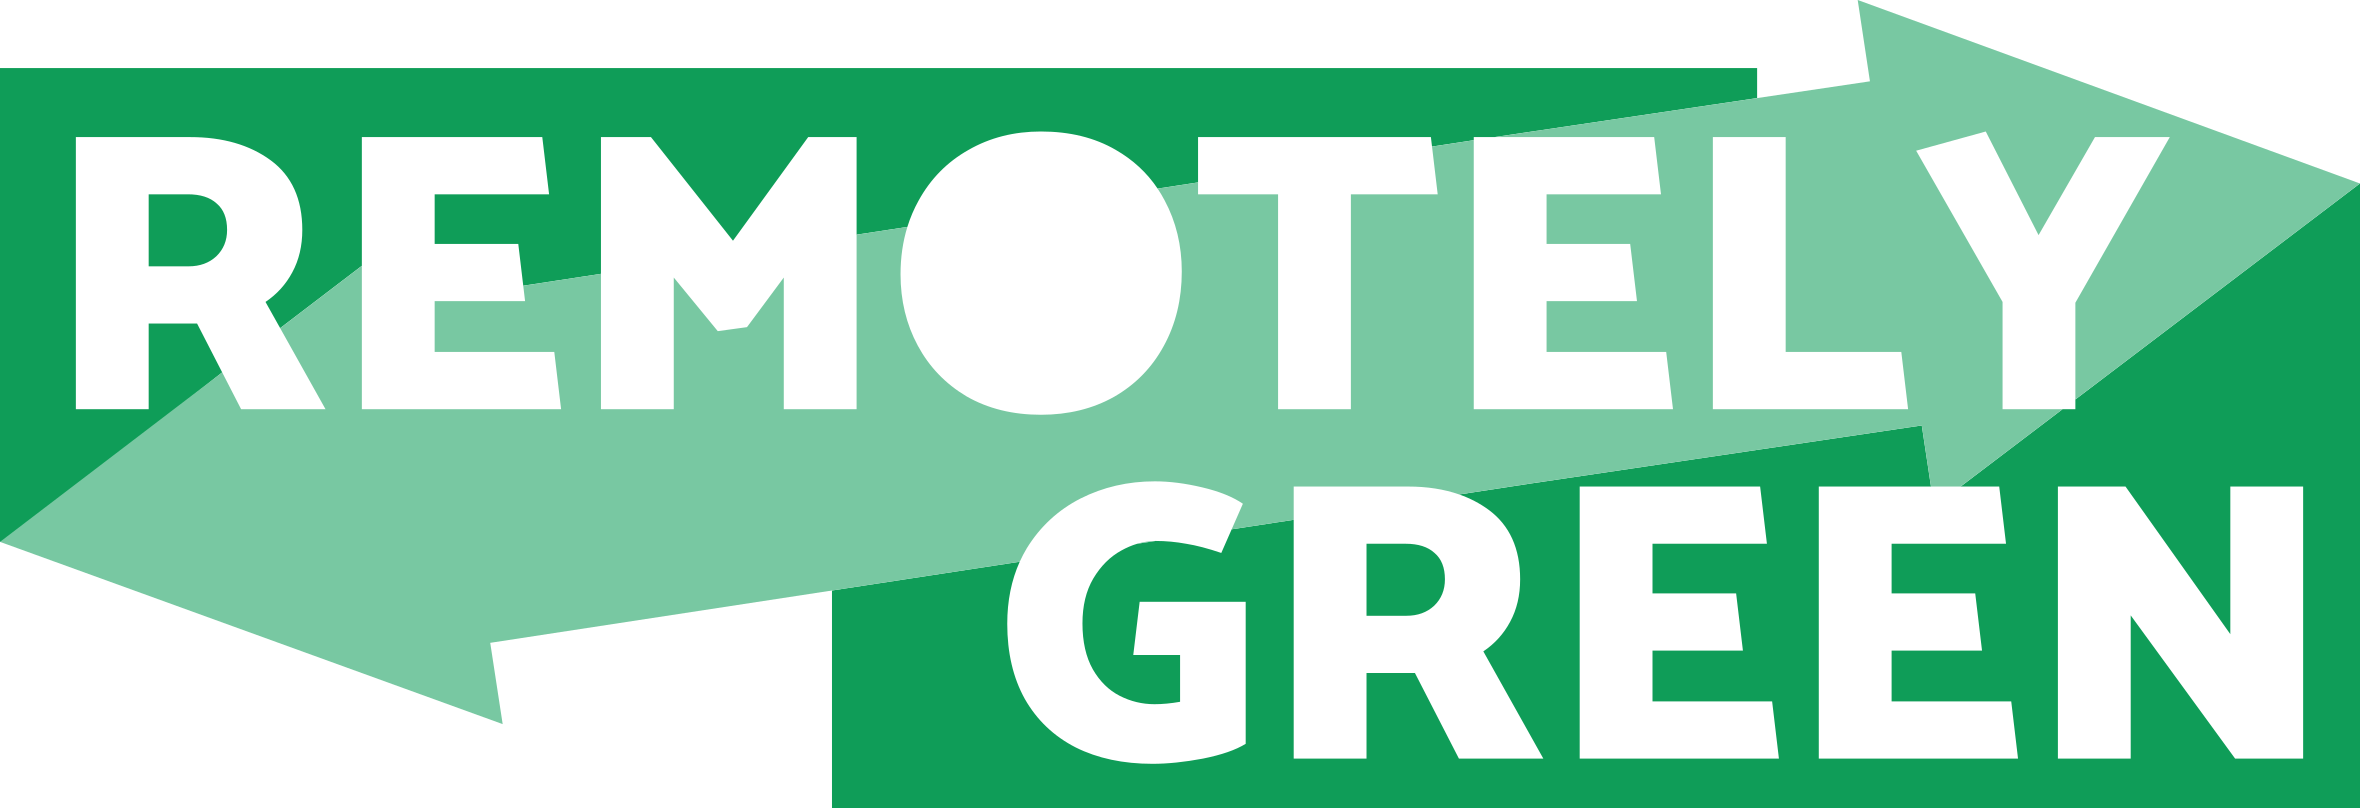 Virtual networking events - real connections | RemotelyGreen